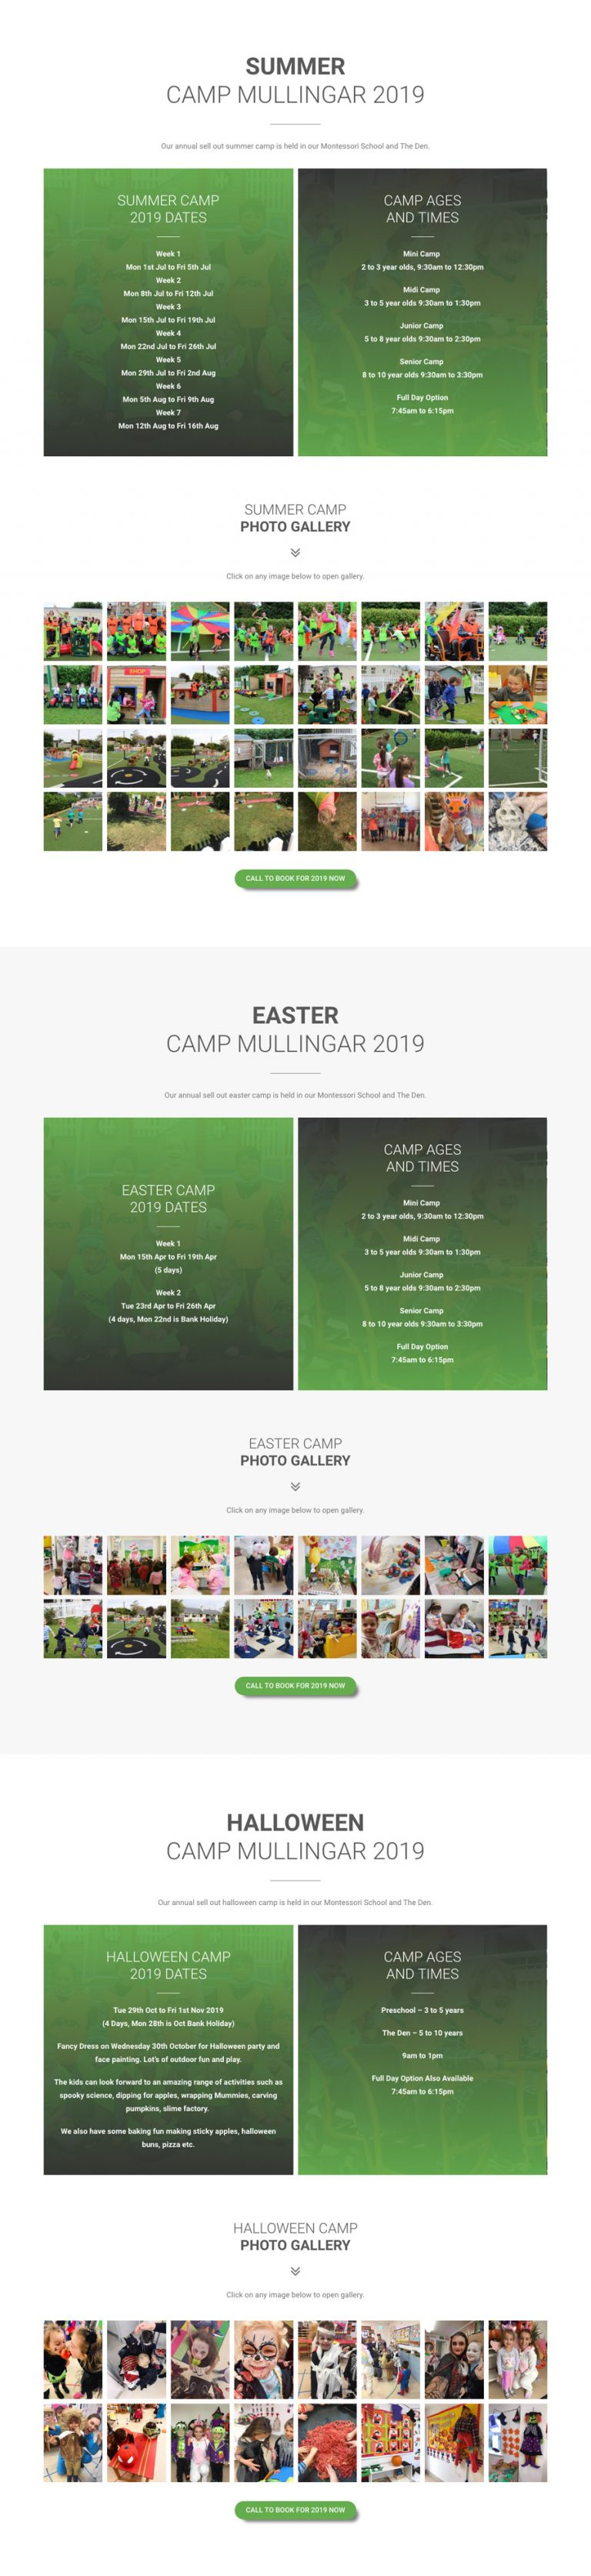 camps dates